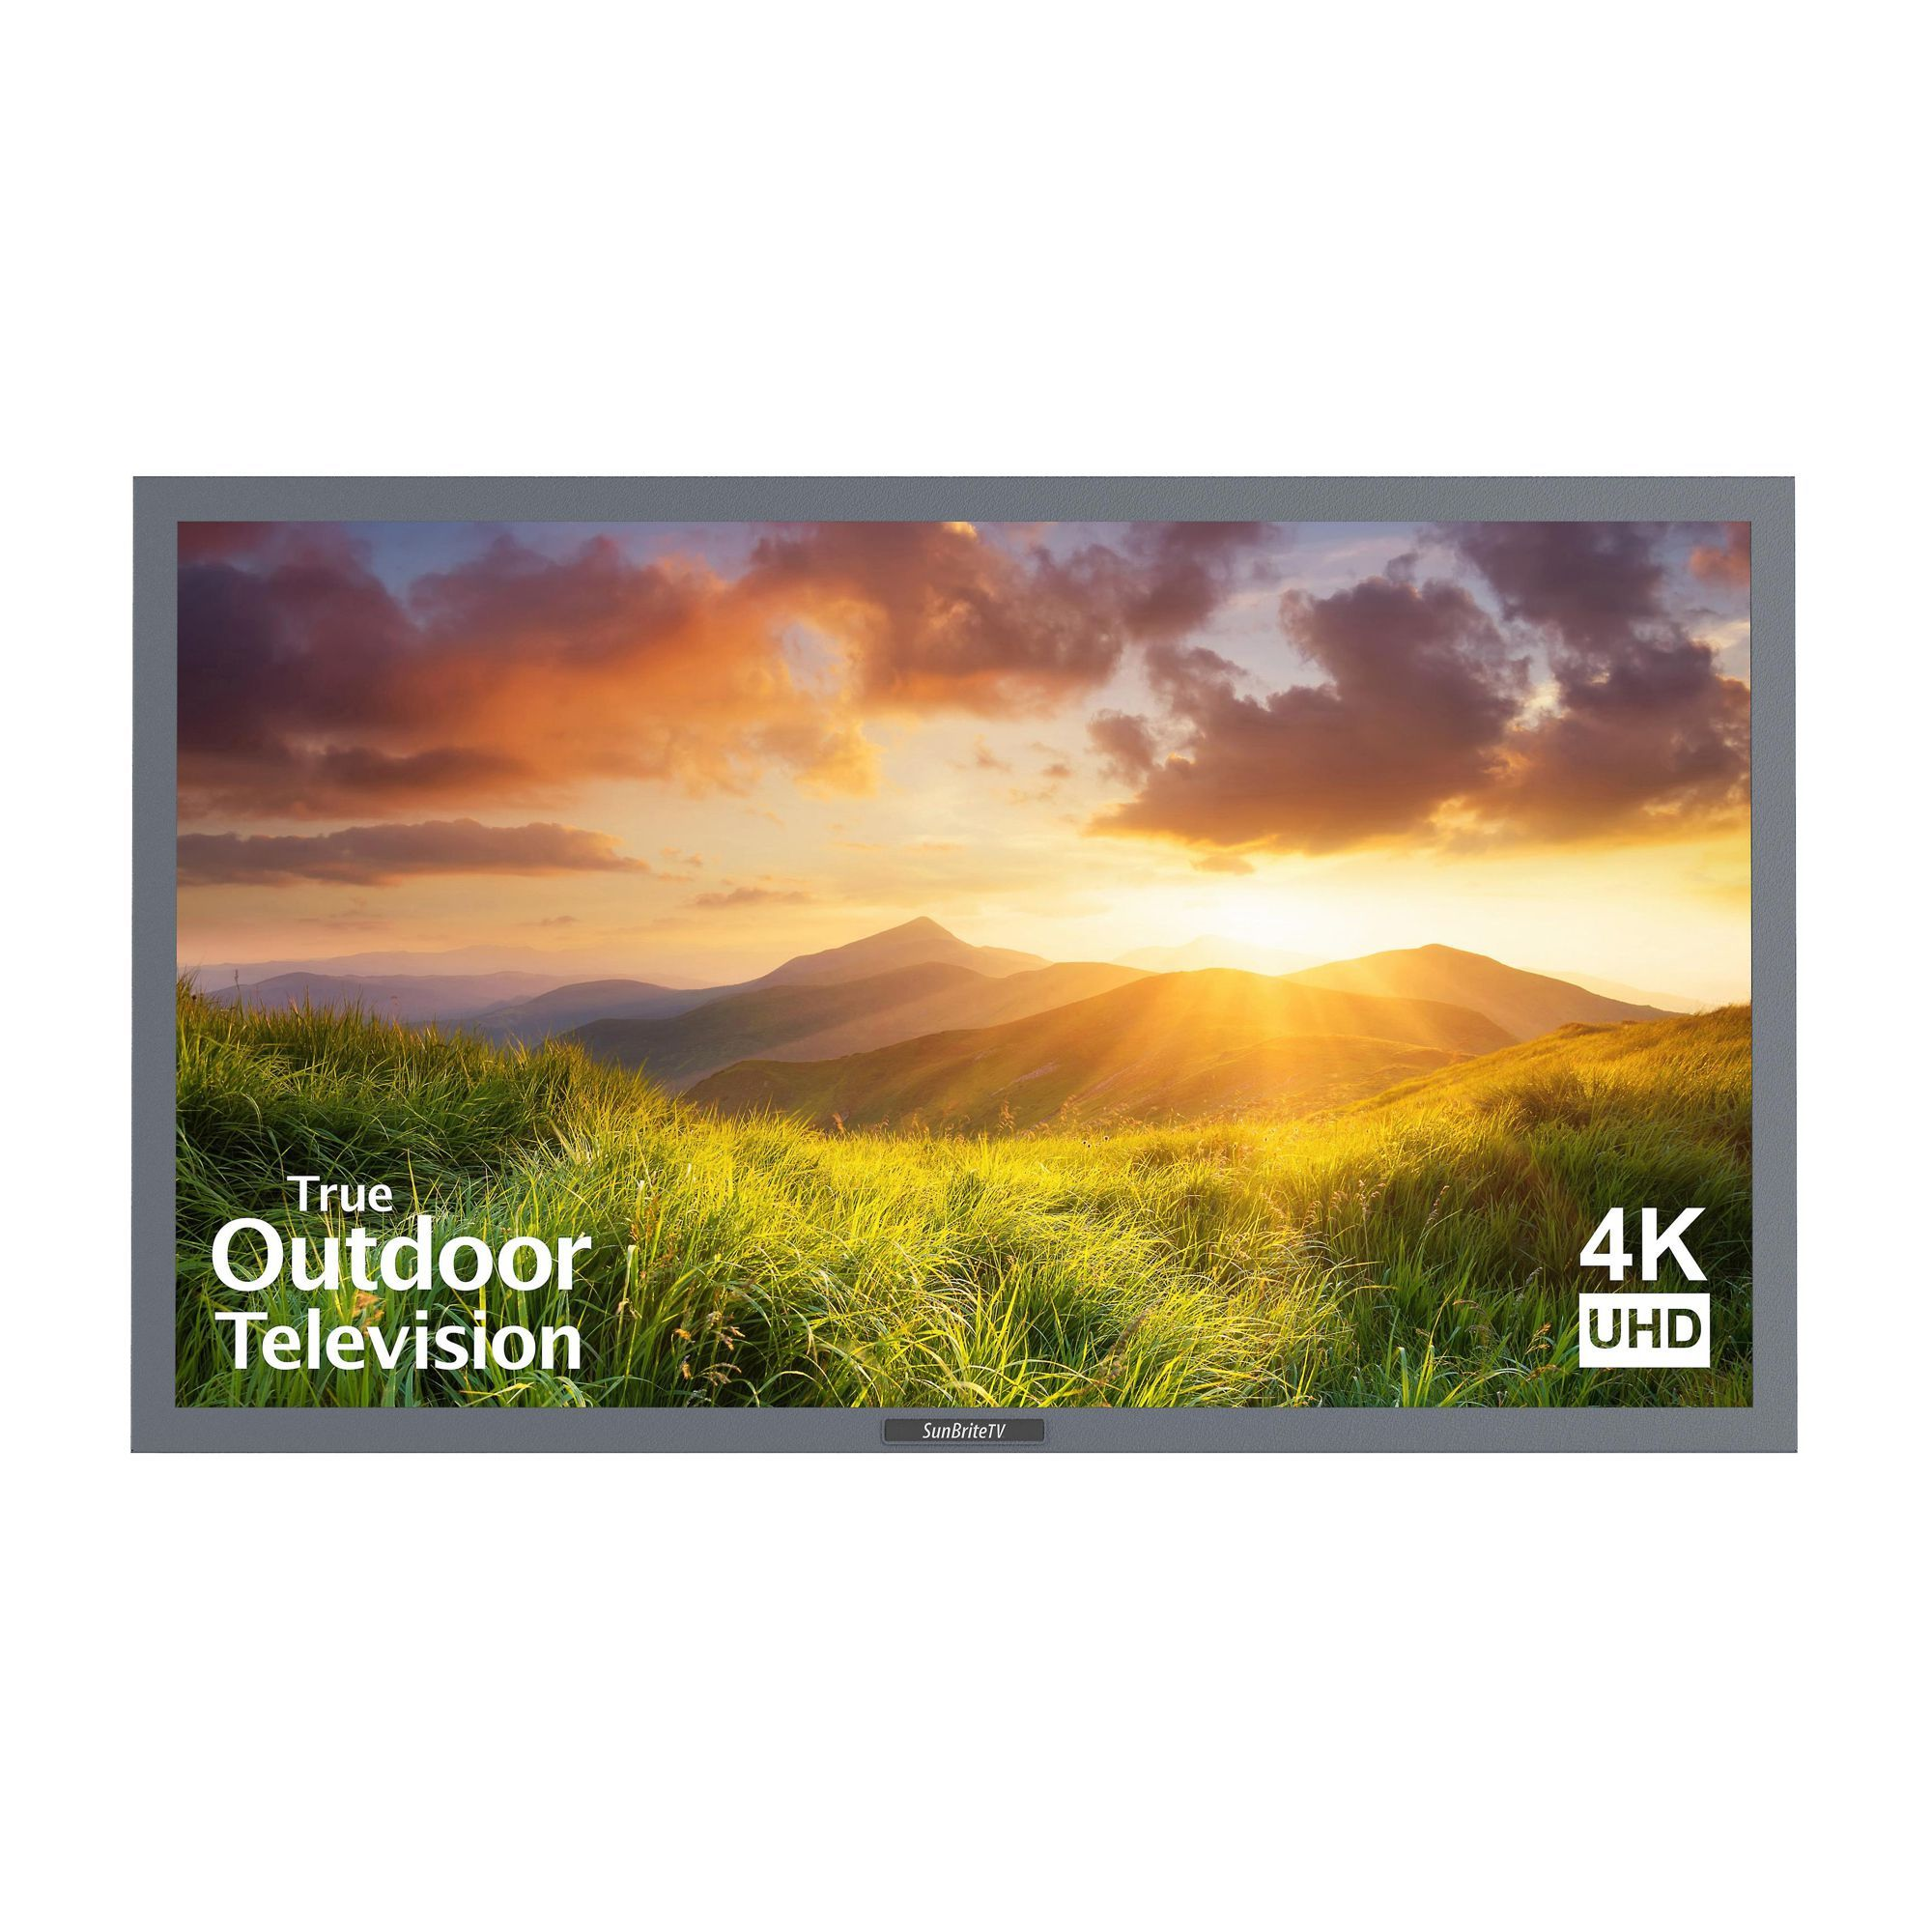 7 Best Outdoor Tvs For Your Patio In 2019 Televisions At Every Price